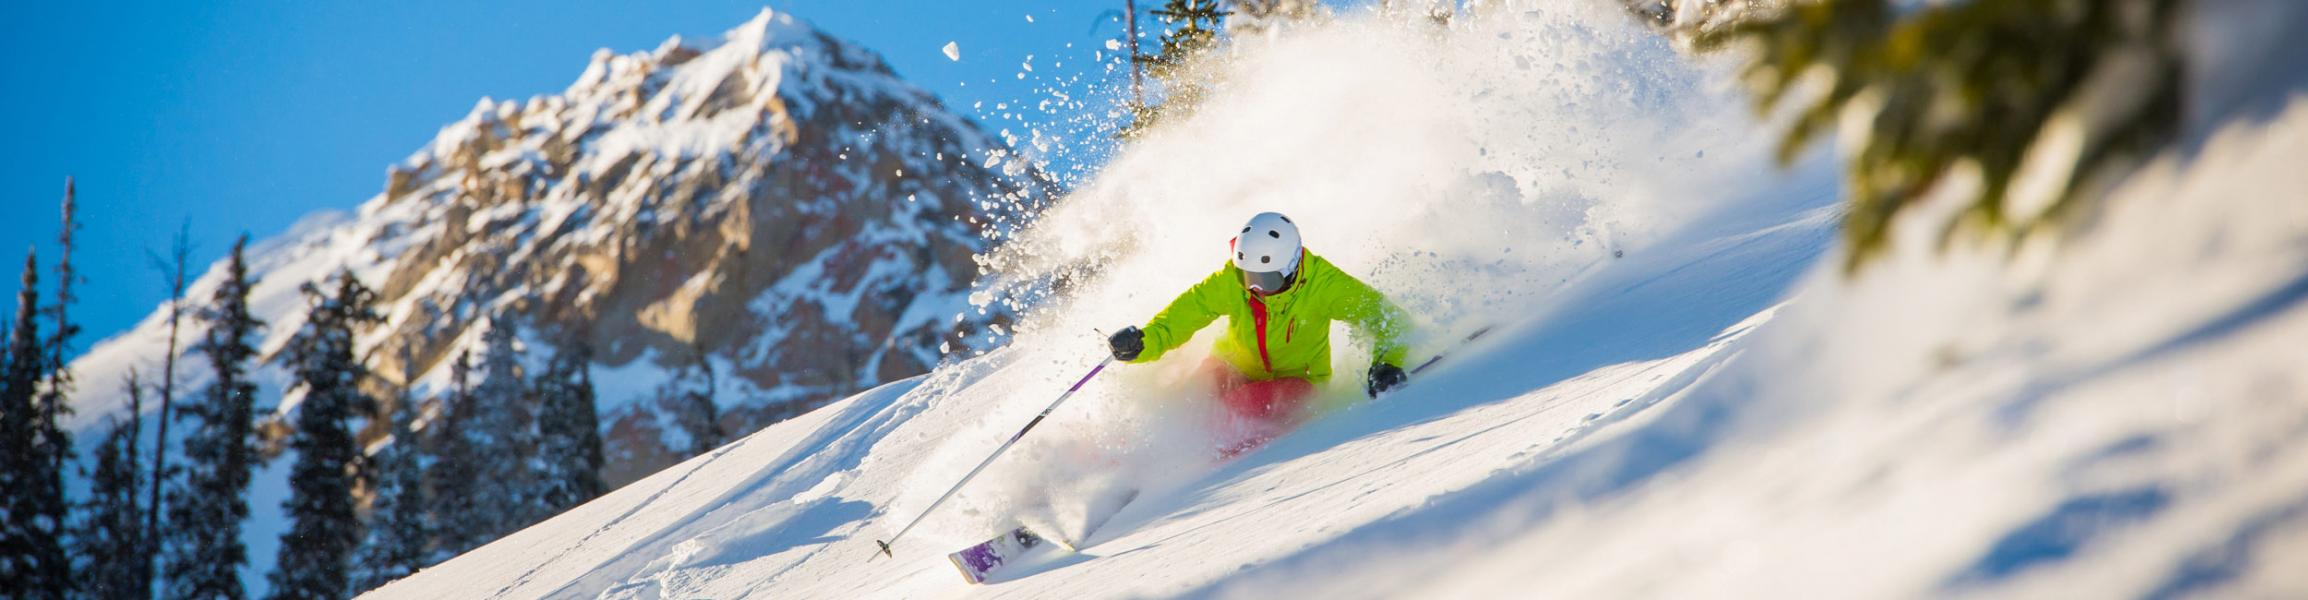 Ski Packages That Work With Travel Agents